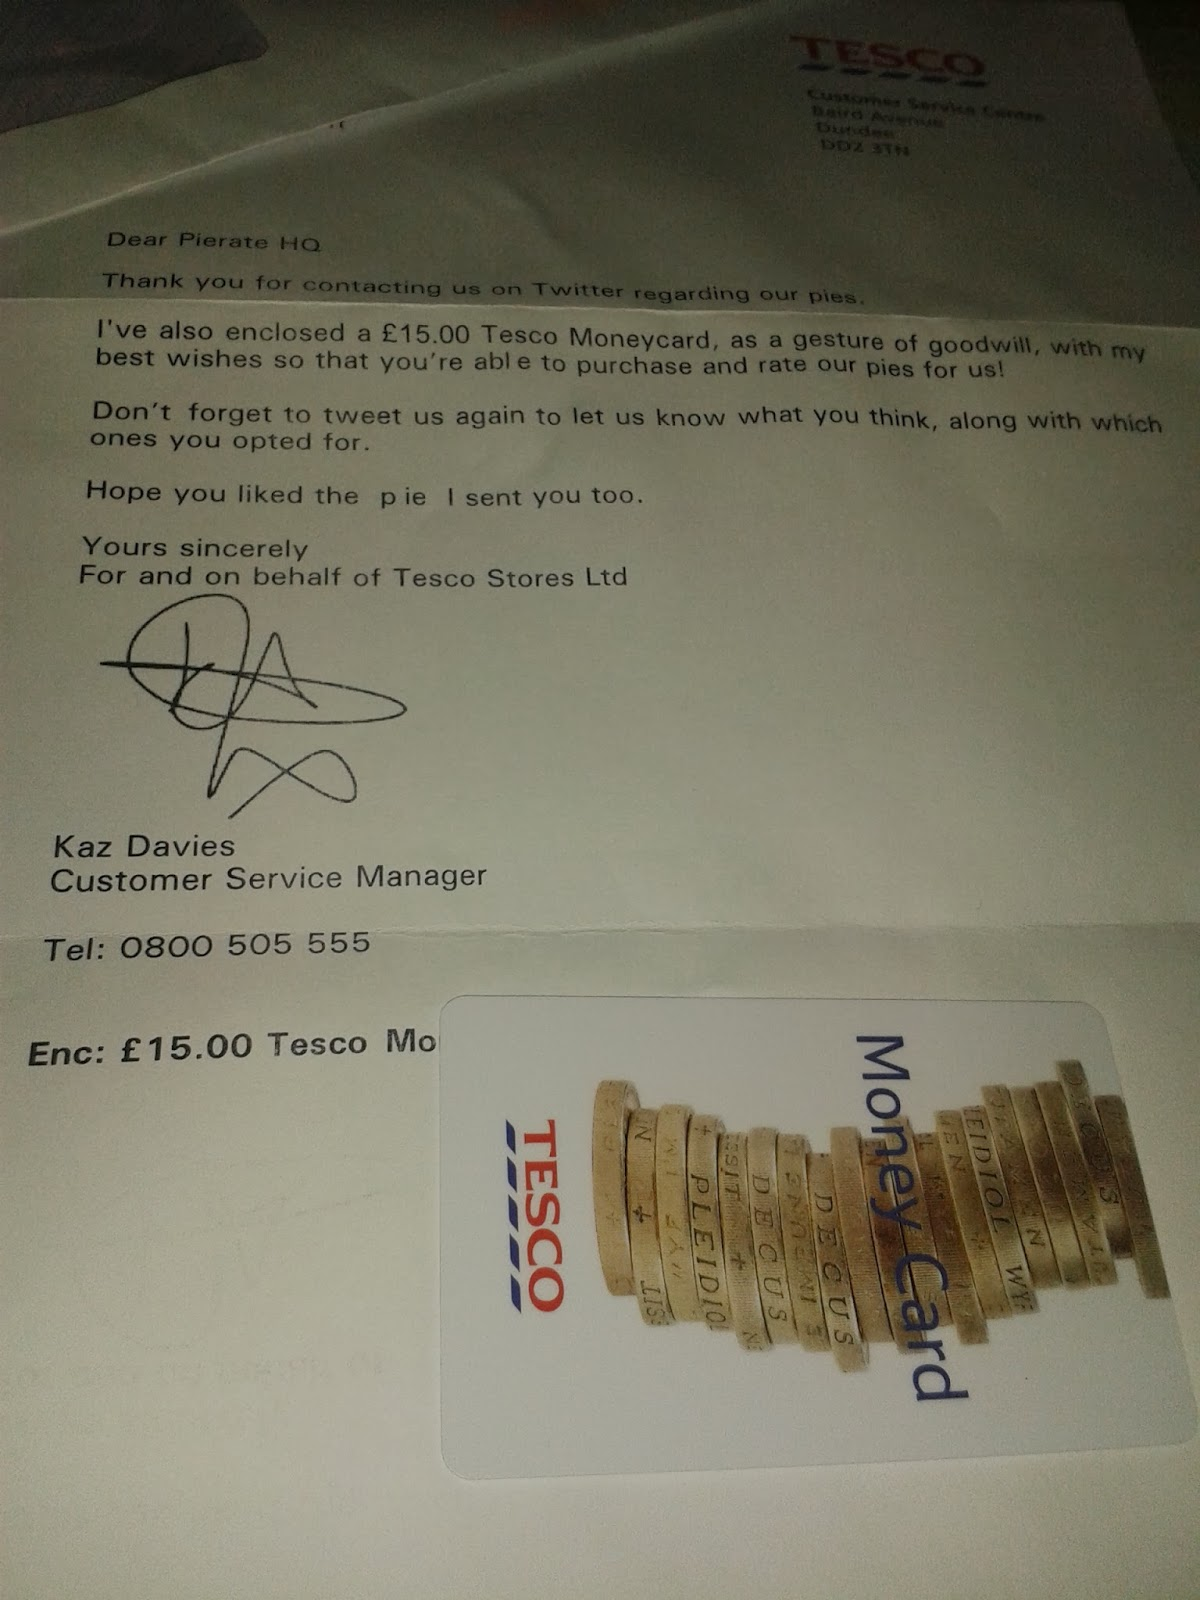 Tesco Pie Review Letter